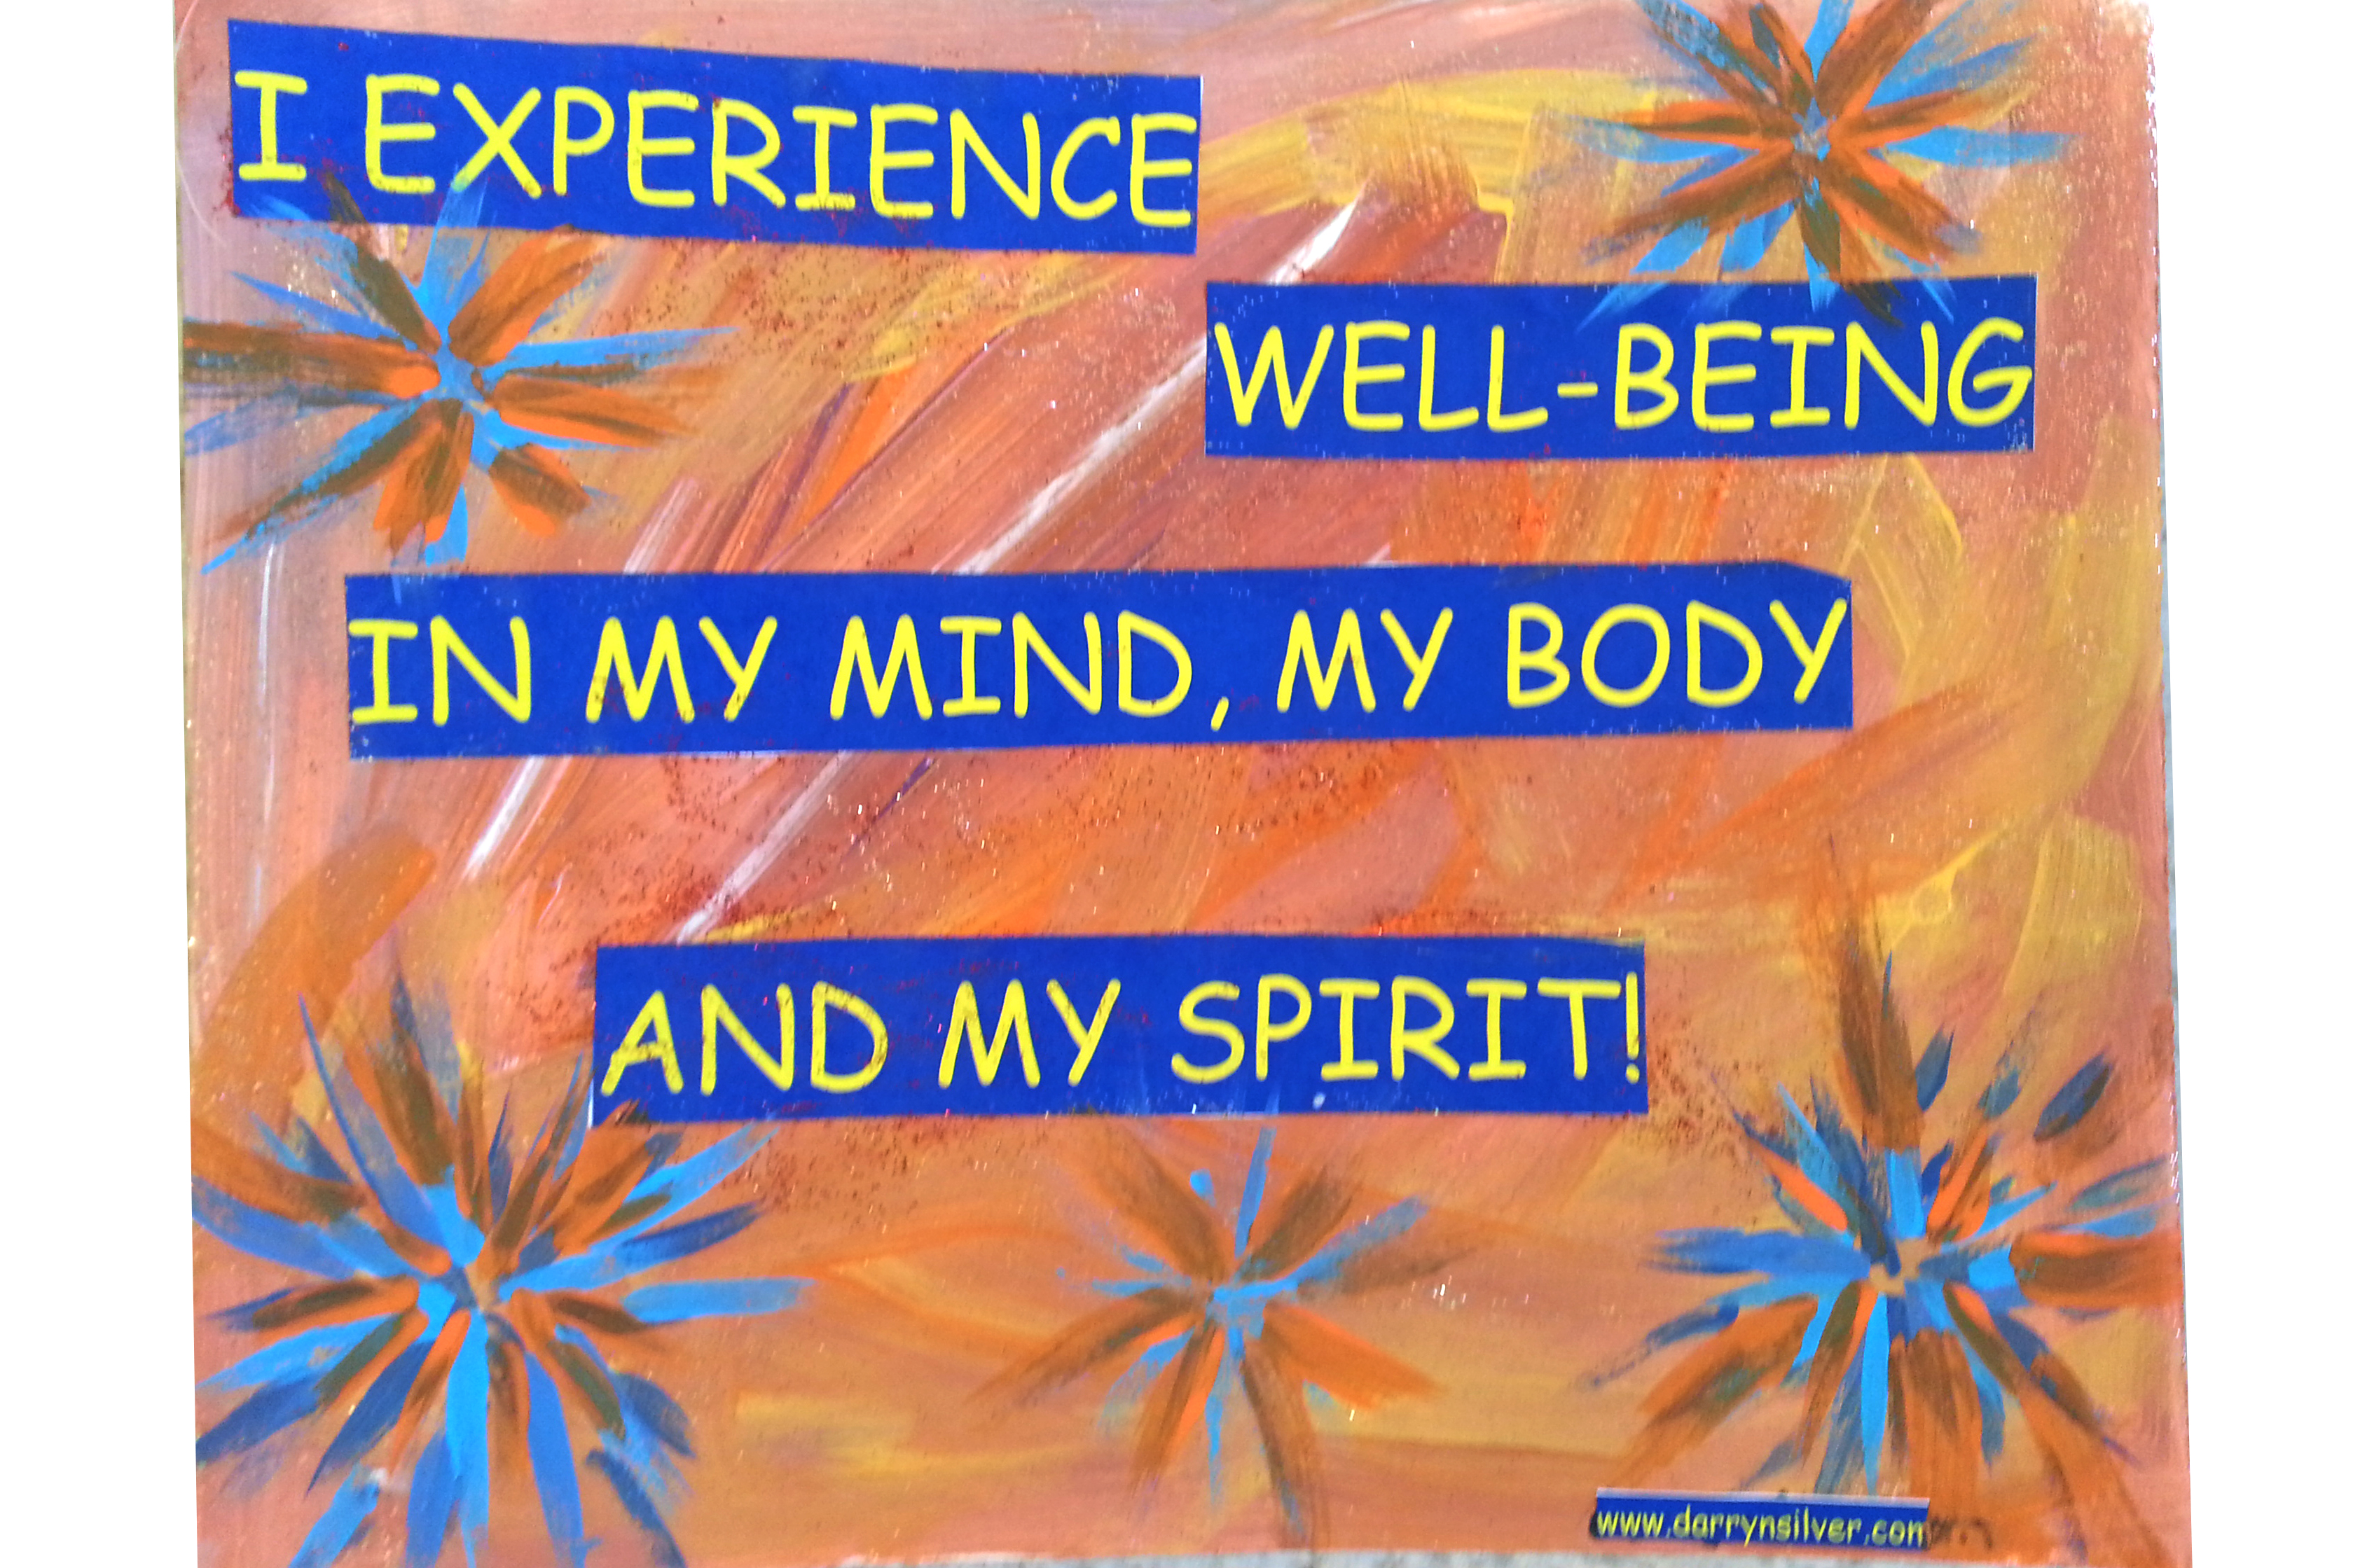 I Experience Wellbeing - Inspirational Sign - Darryn Silver